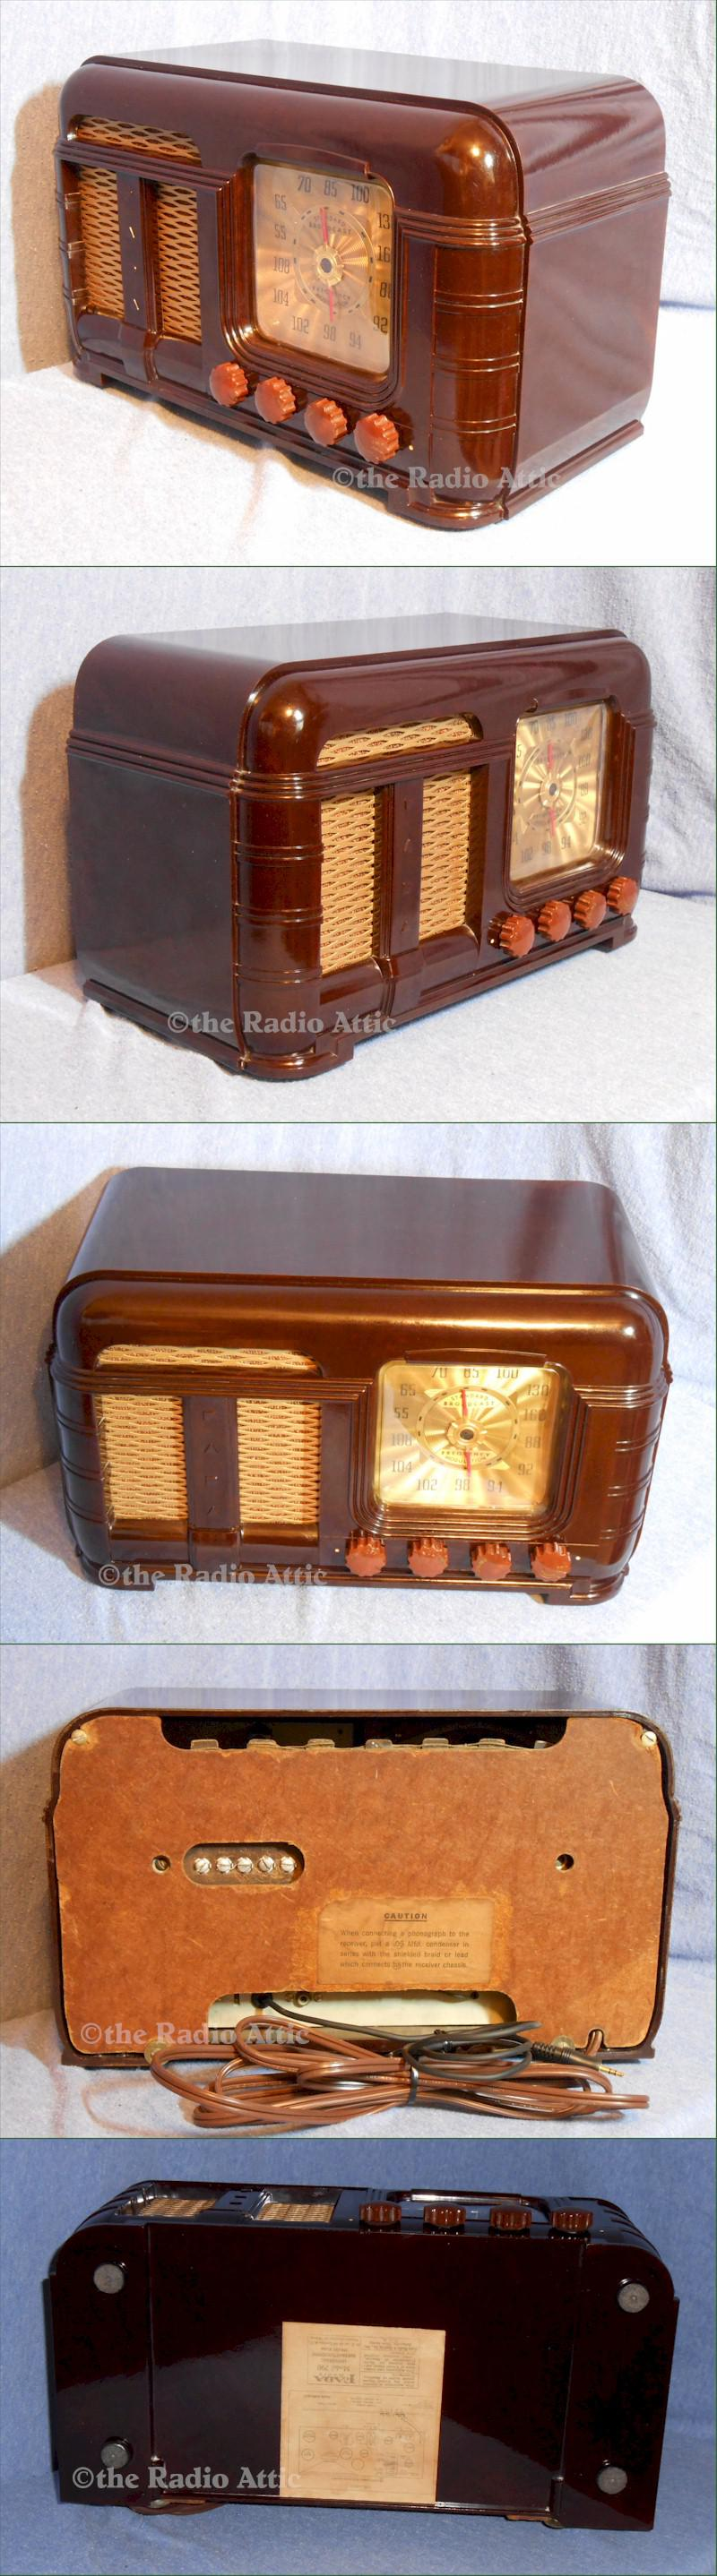 FADA 790 Series B AM/FM (1949)